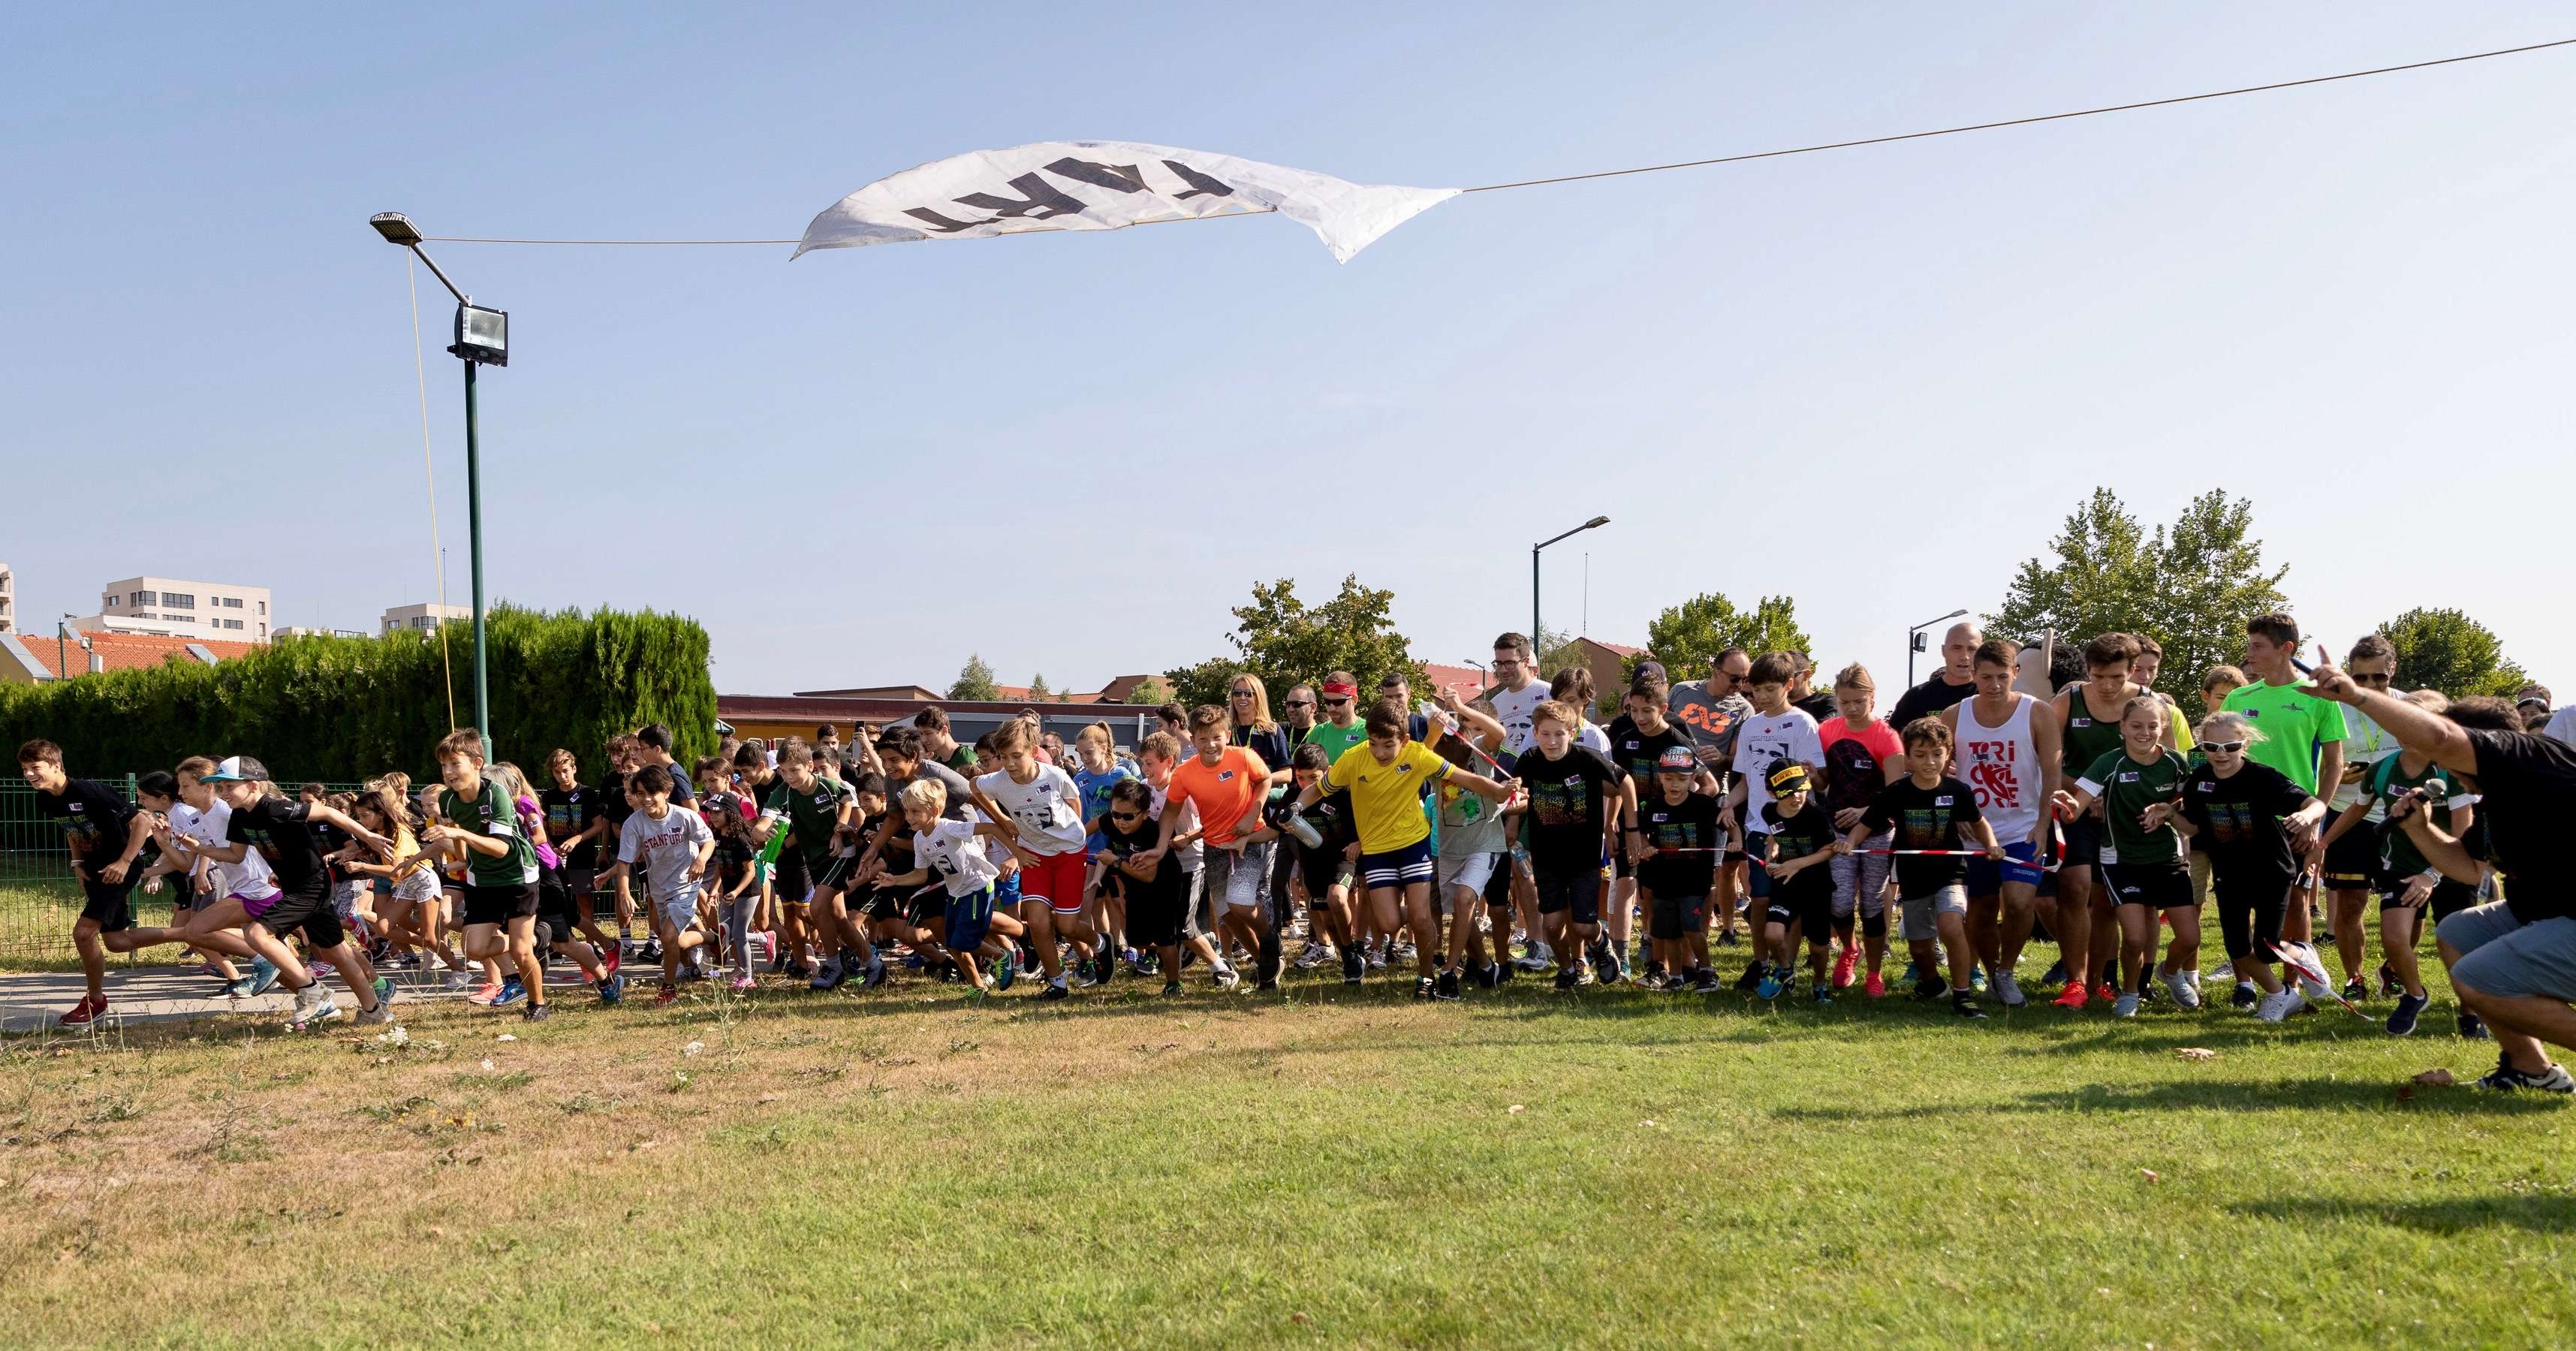 What Happened at This Year's Terry Fox Run